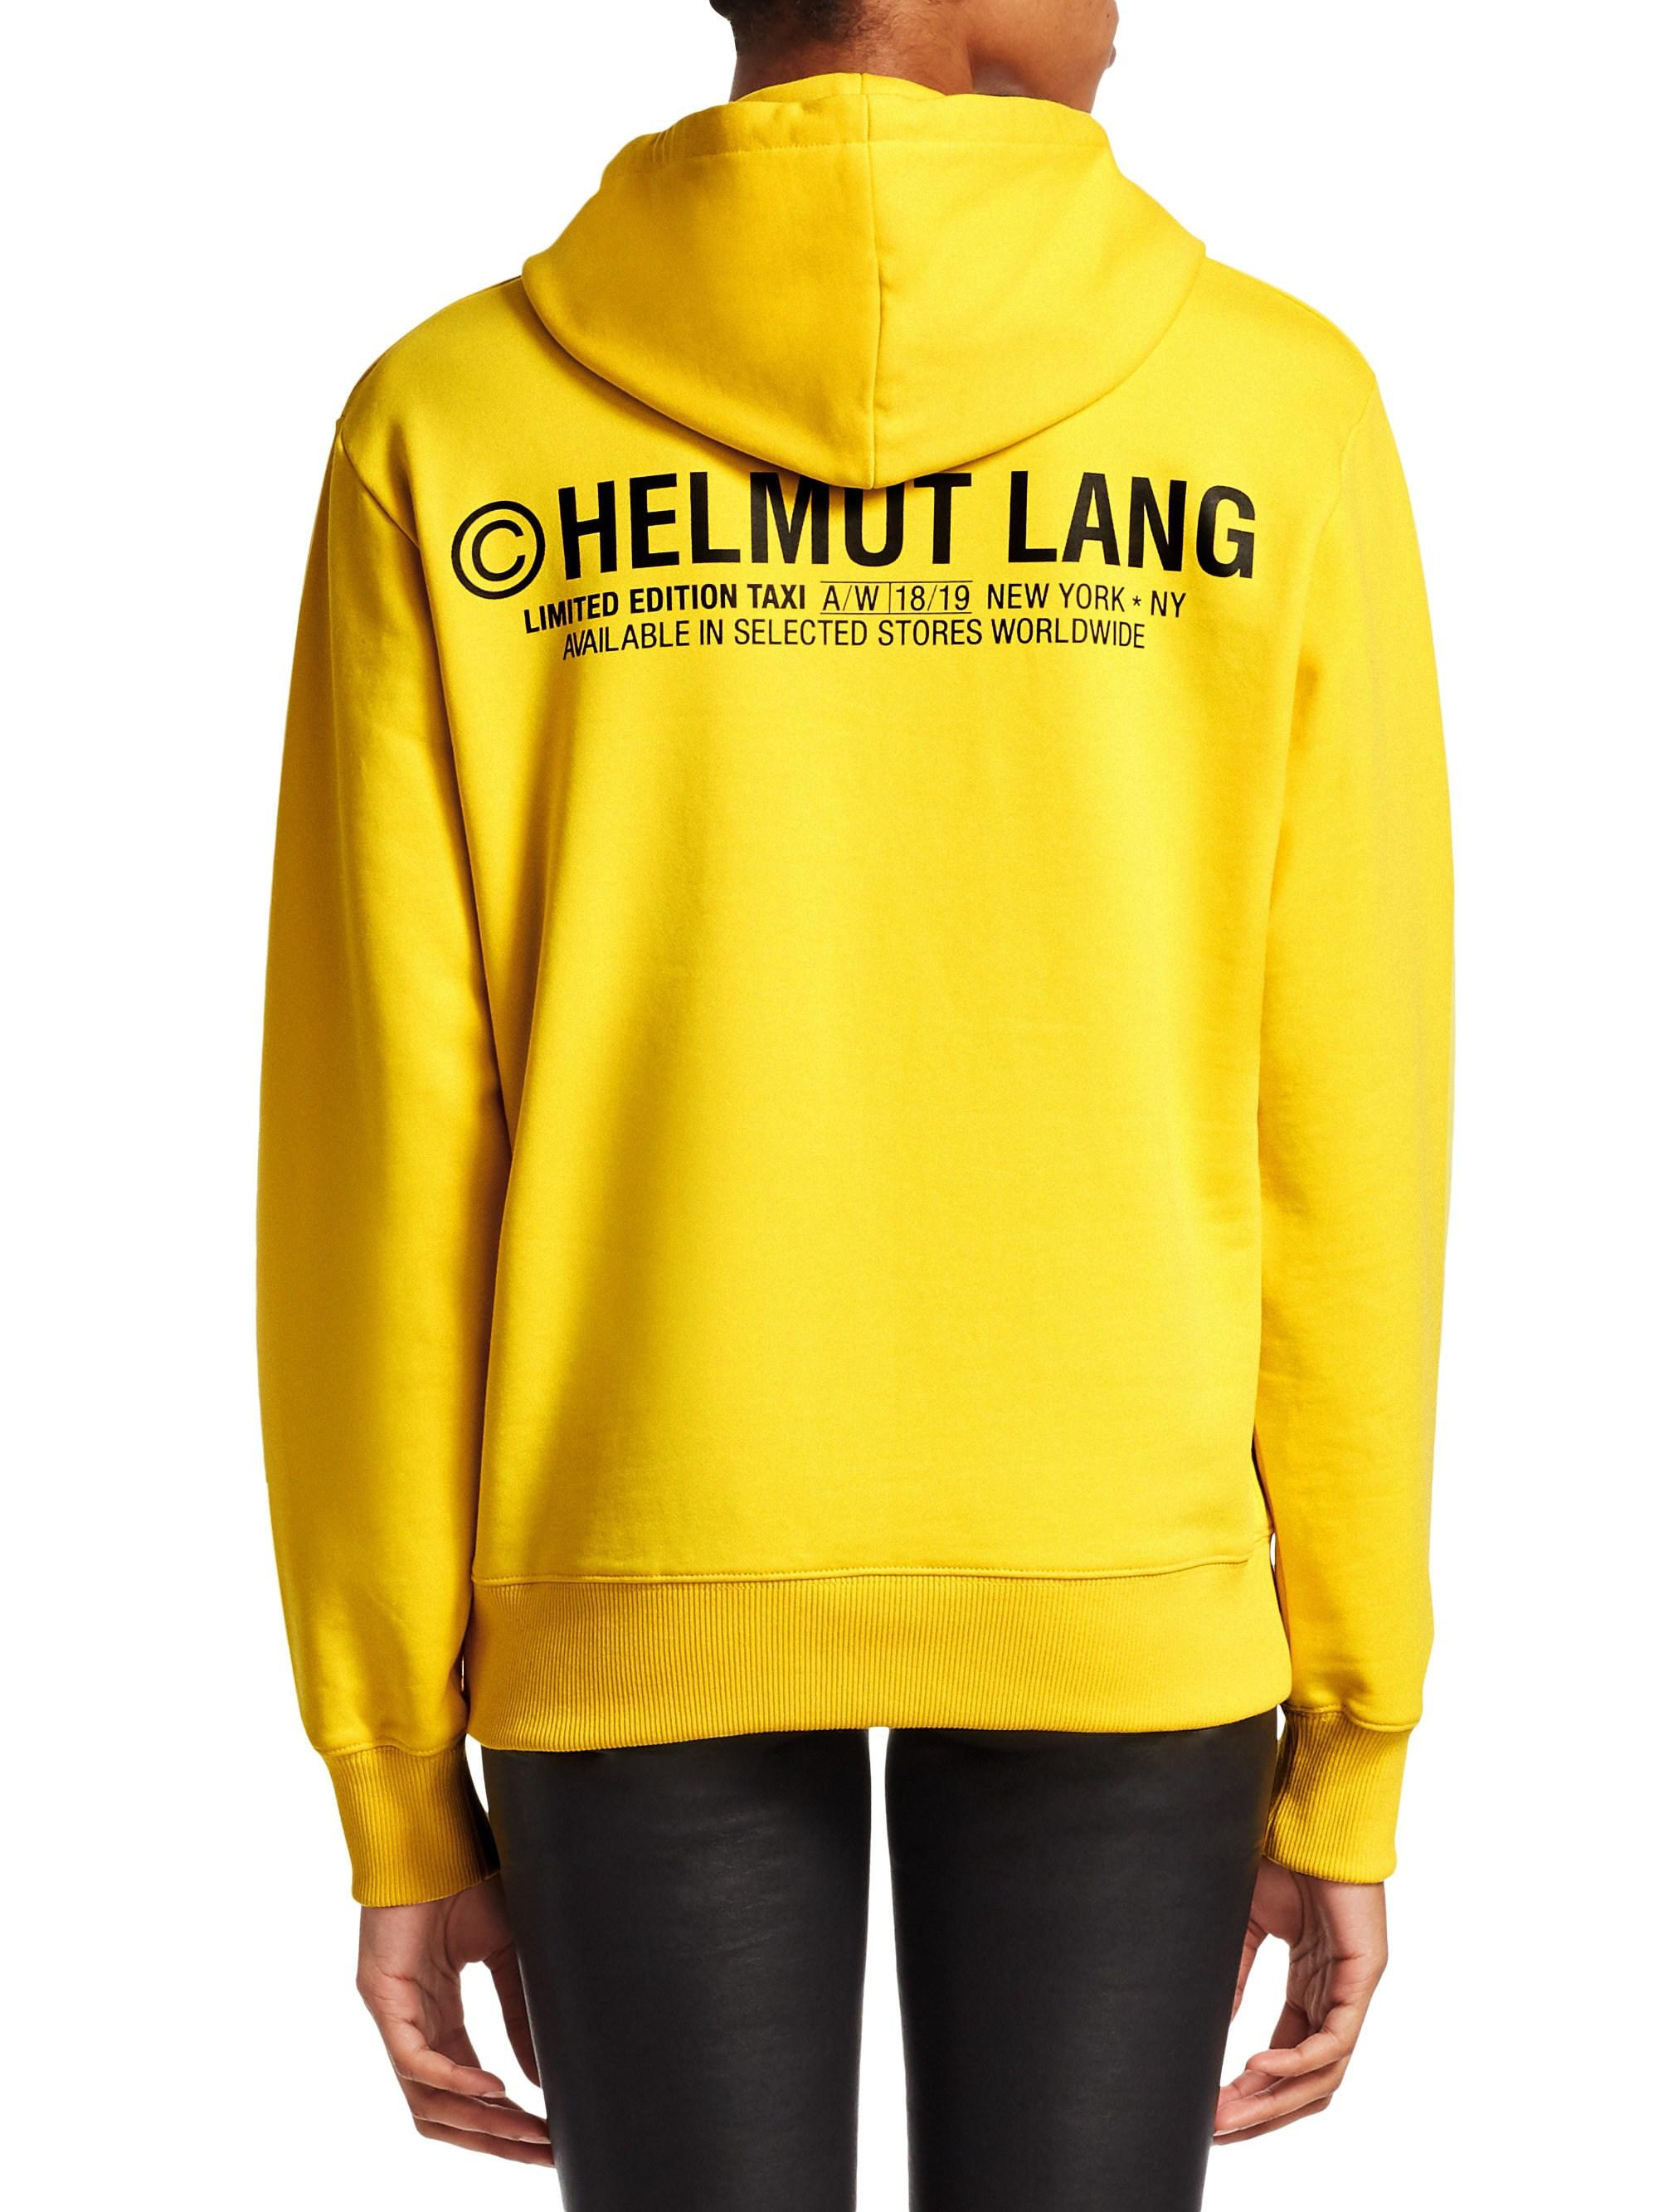 88ffbd740 Helmut Lang Women's Taxi Hoodie - Yellow - Size Xs in Yellow - Lyst